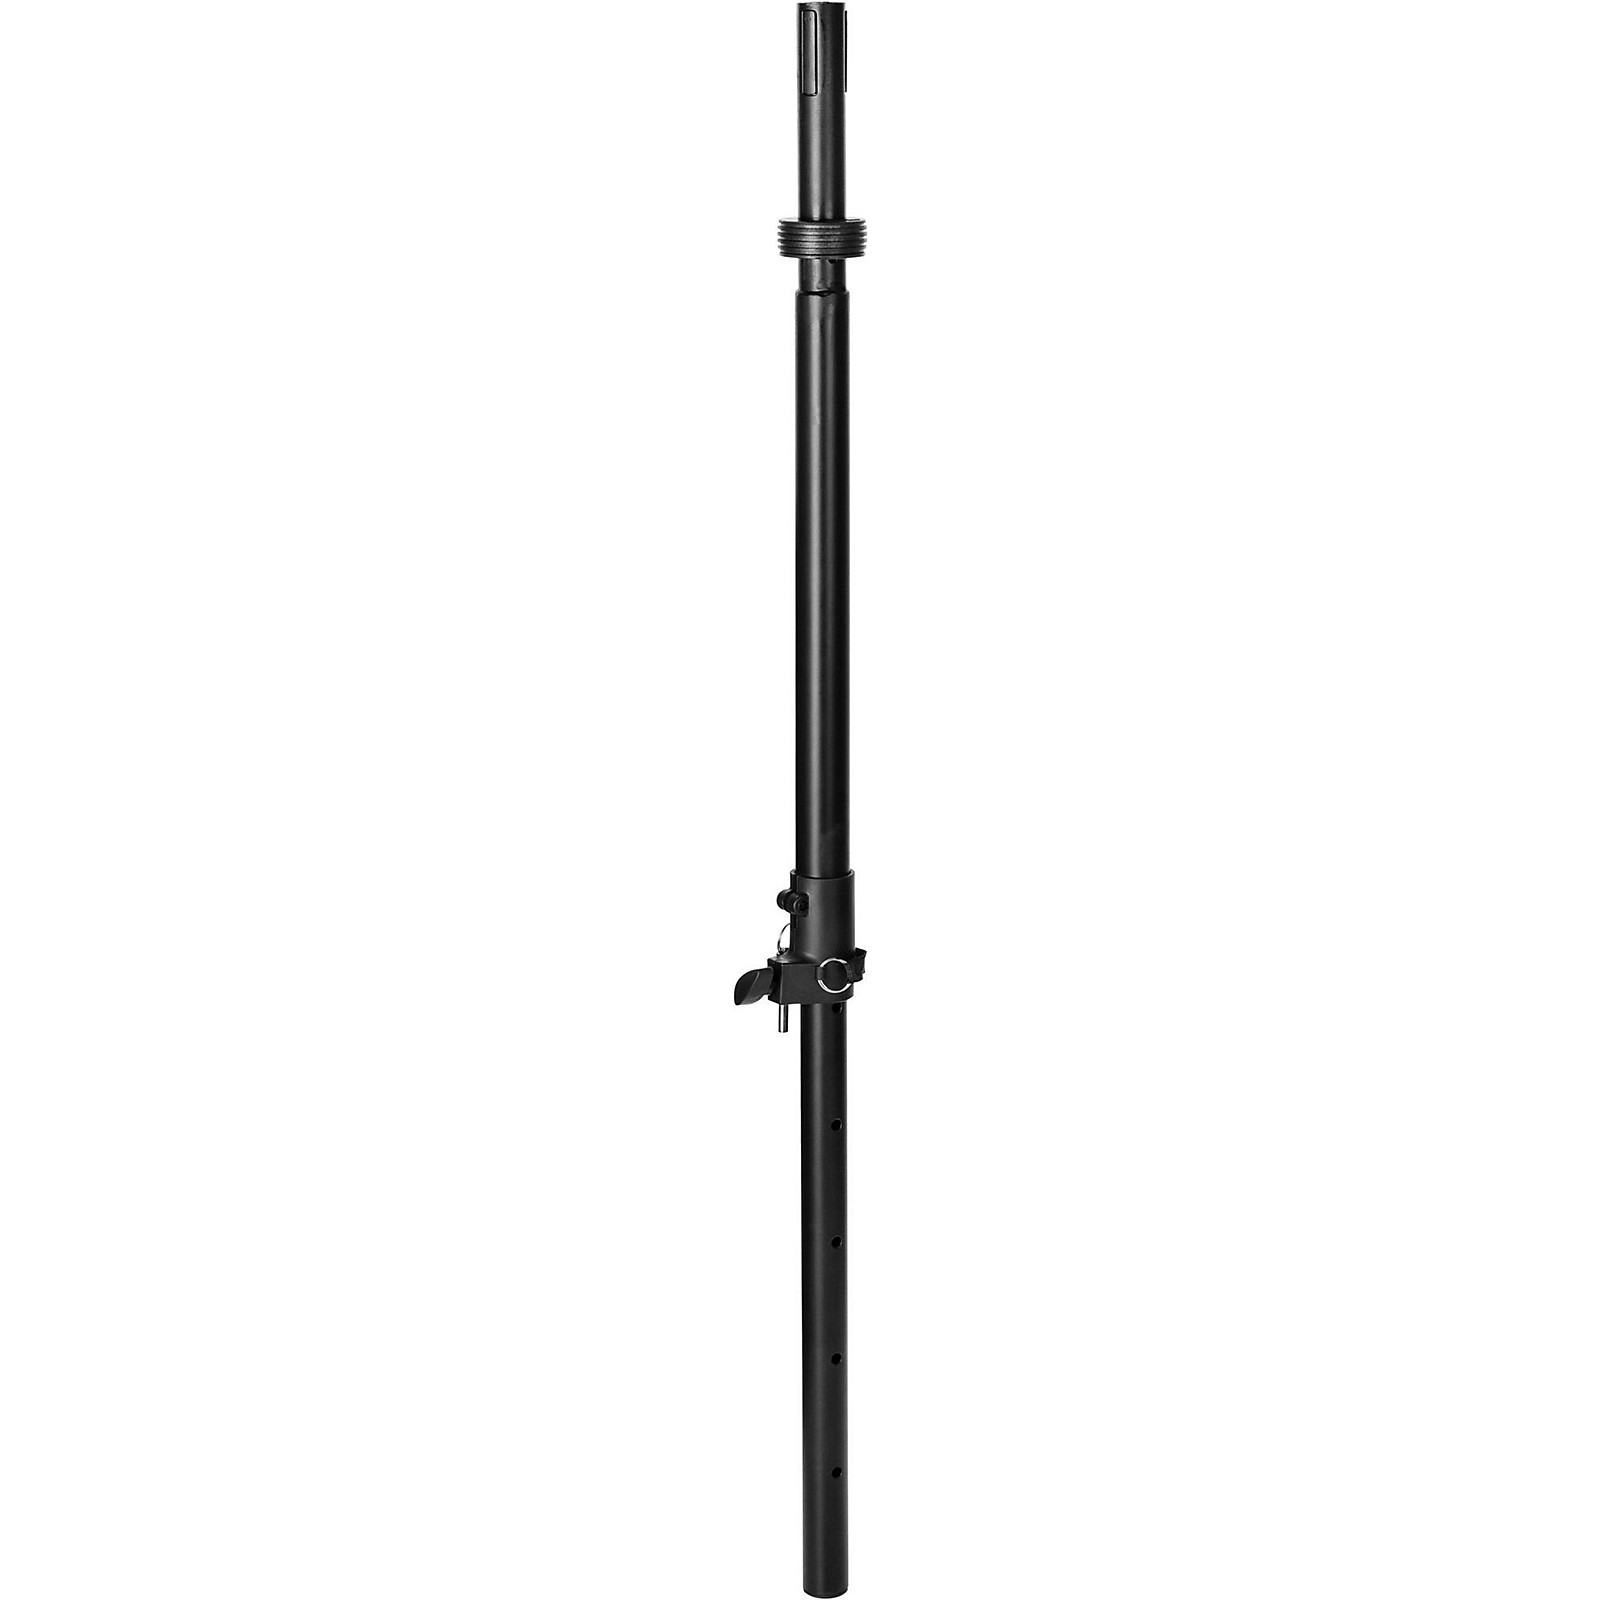 Open Box On-Stage Speaker Sub Pole With Locking Adapter